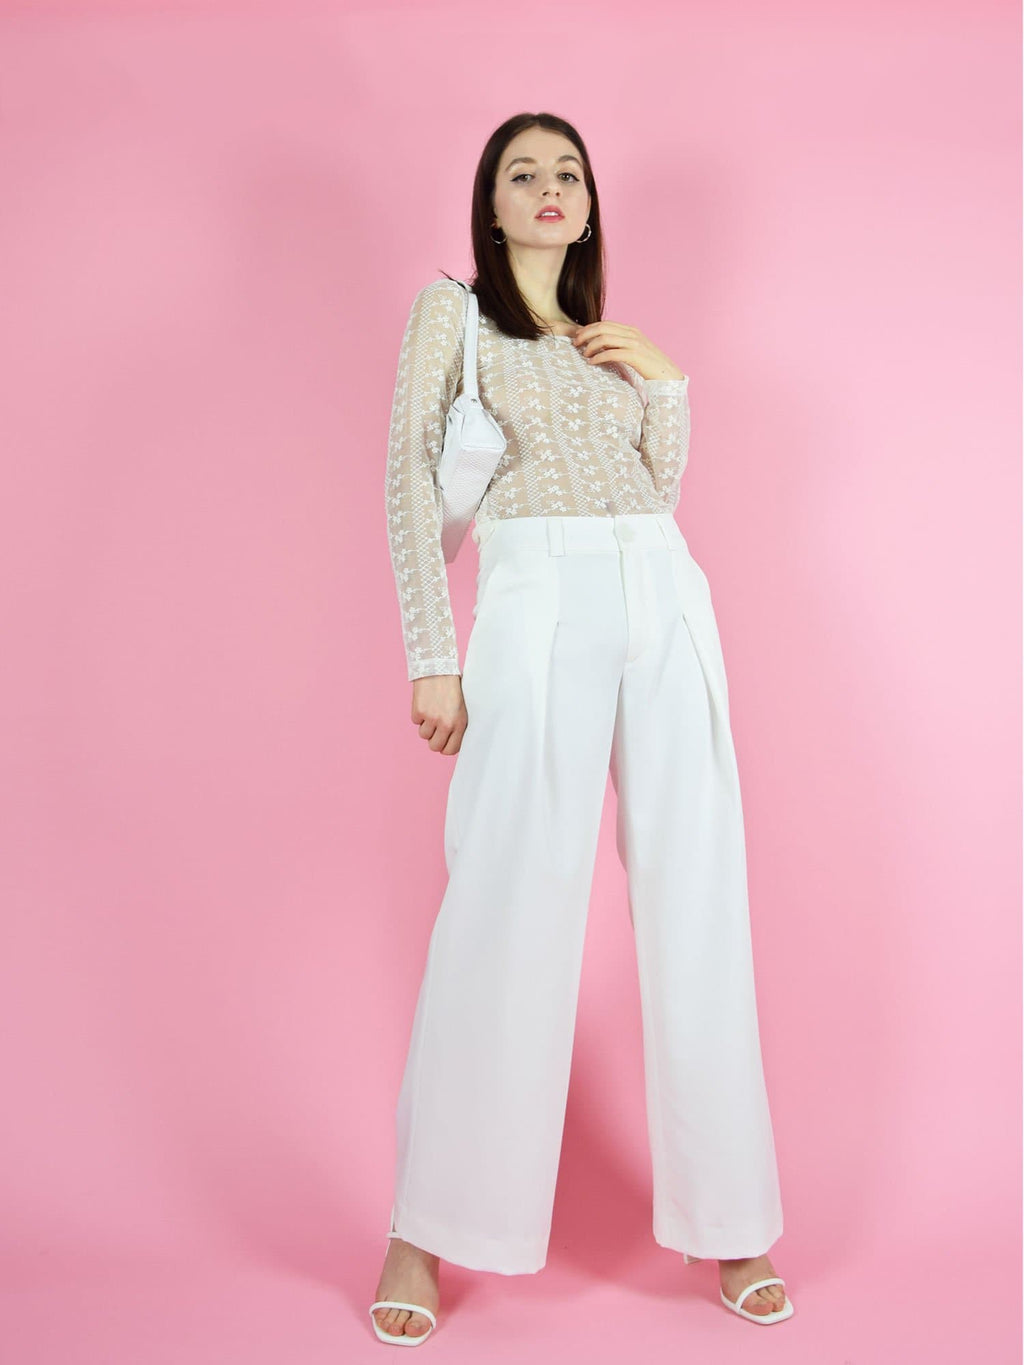 blonde gone rogue's girlboss sustainable trousers in white perfect for wedding guests and other formal occasions. The pants are paired with the daisy long-sleeve lace top in white.